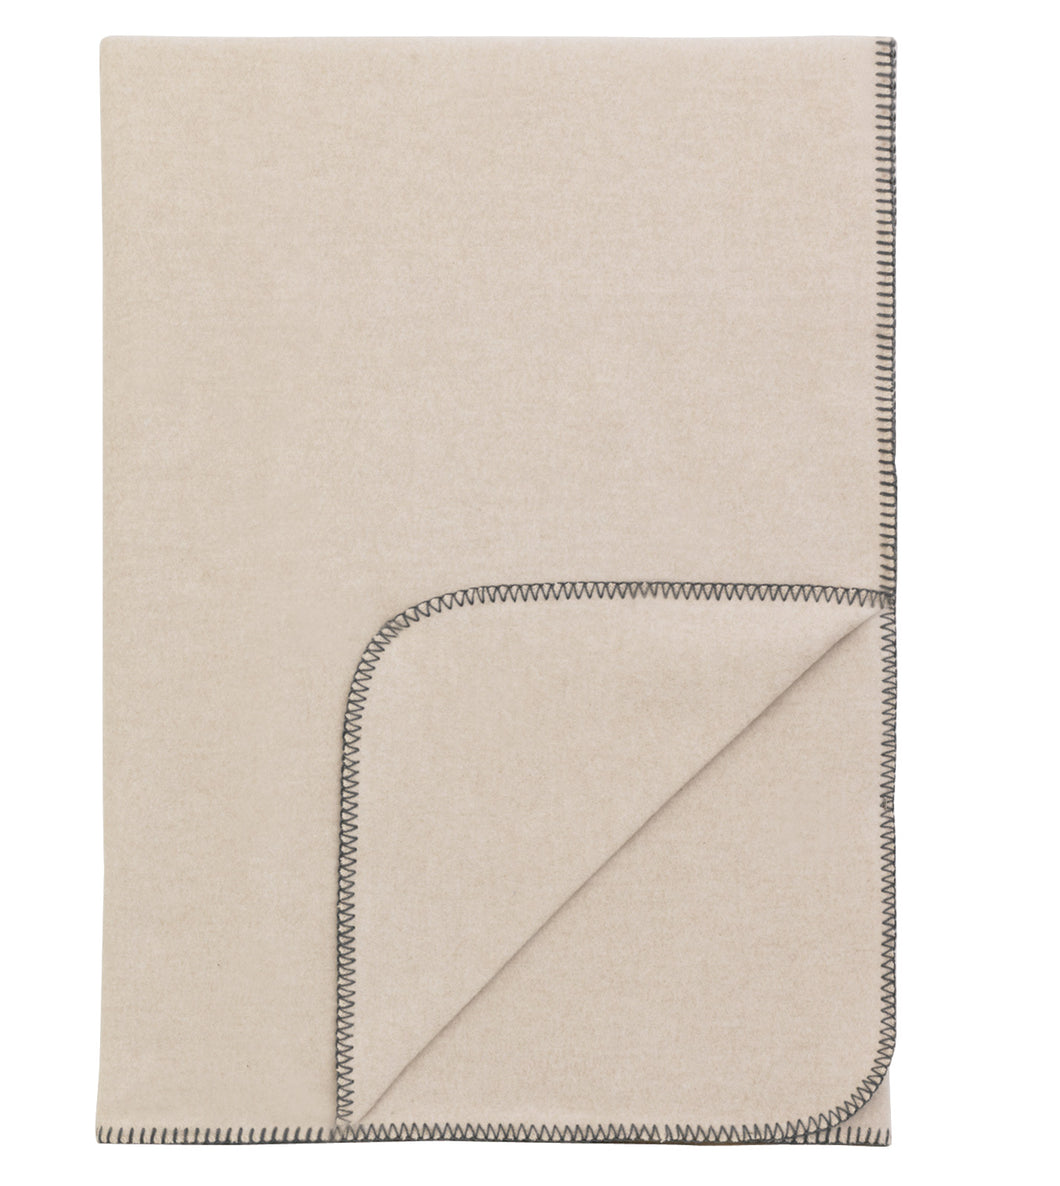 Neutral Solid Rustic 100% Cotton Throw With Gray Blanket Stitch